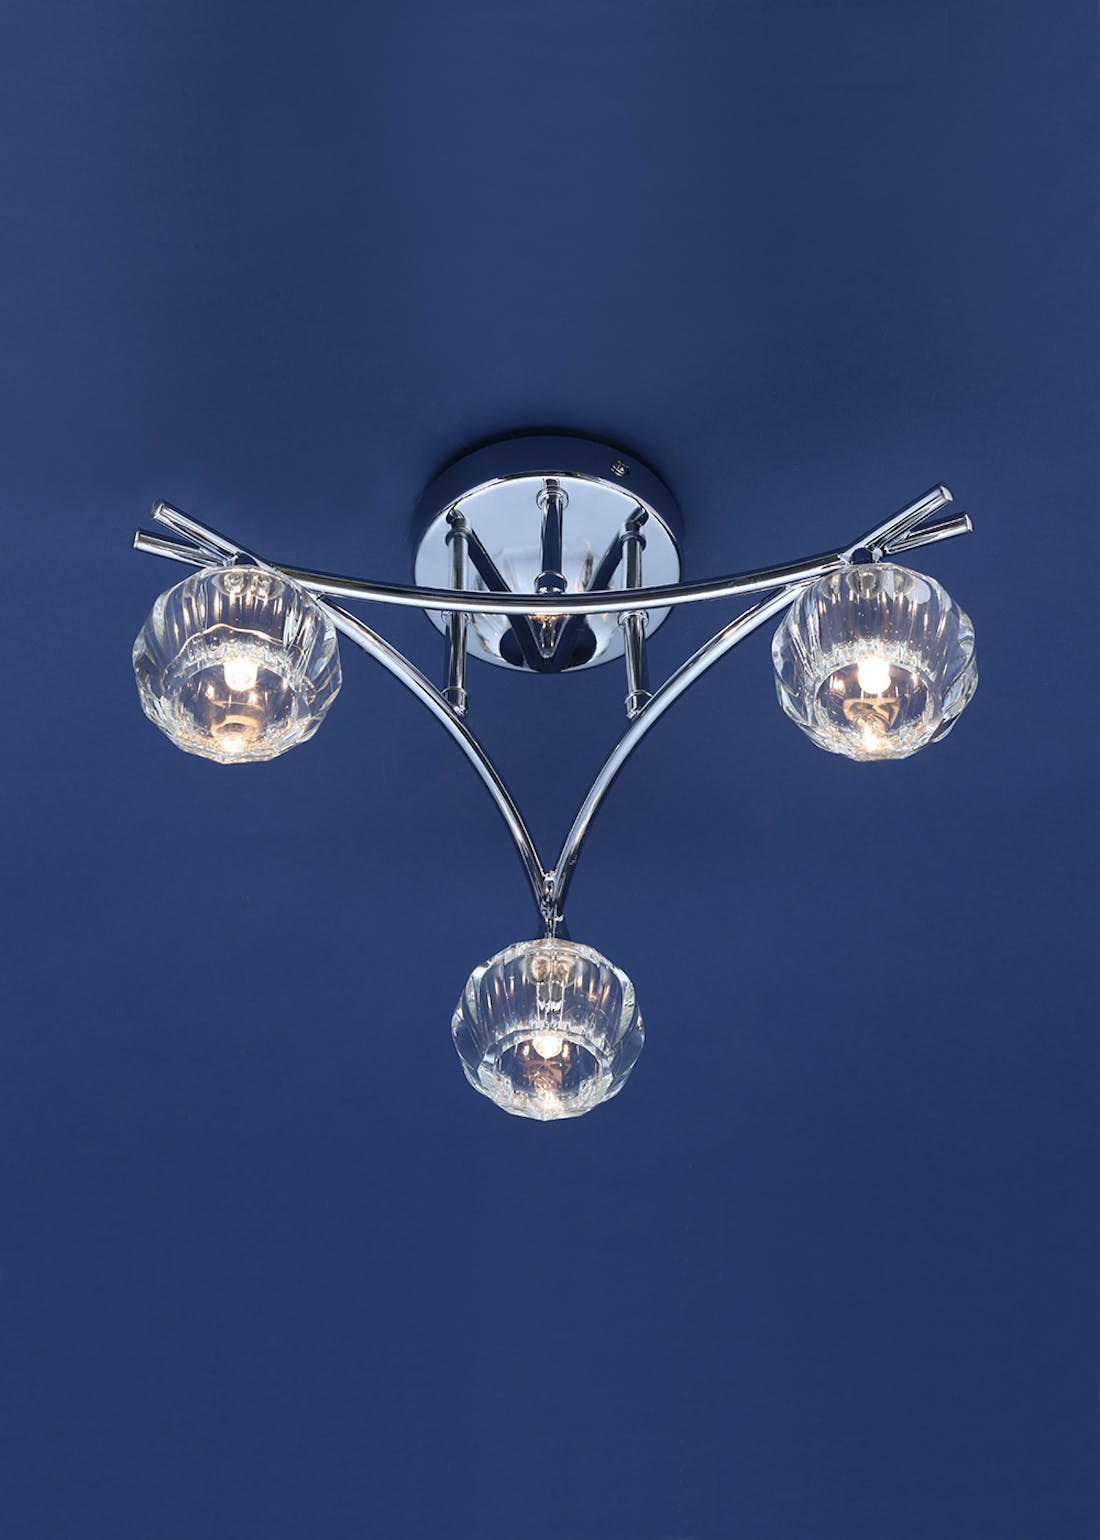 Inlight Hati 3 Light Flush Ceiling Light (18cm x 38cm x 38cm)